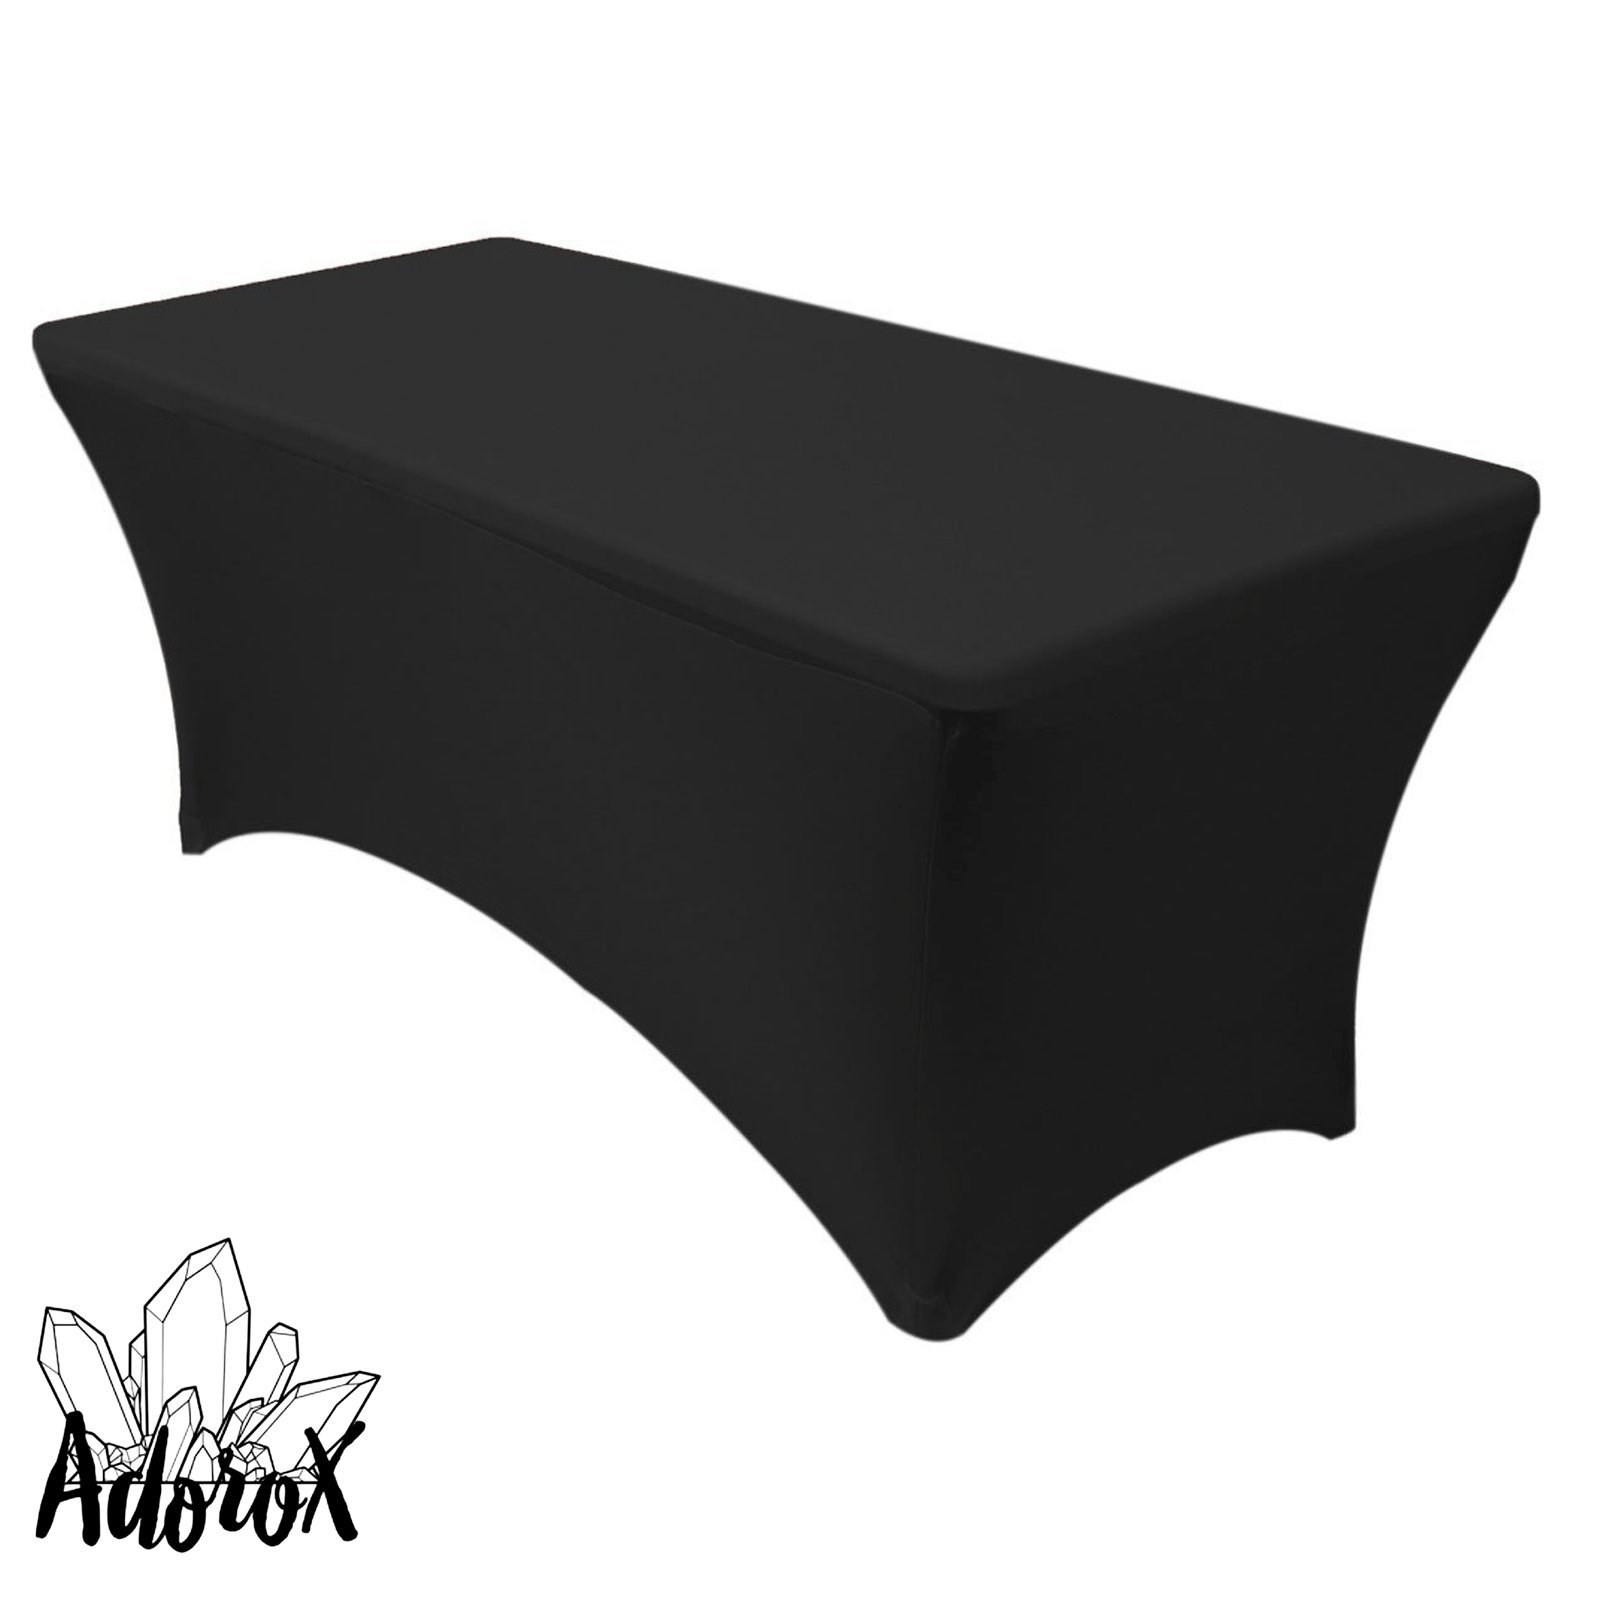 Adorox (2 Pcs 4 ft Black) Stretch Fabric Spandex Tight Fit Table Cloth Cover